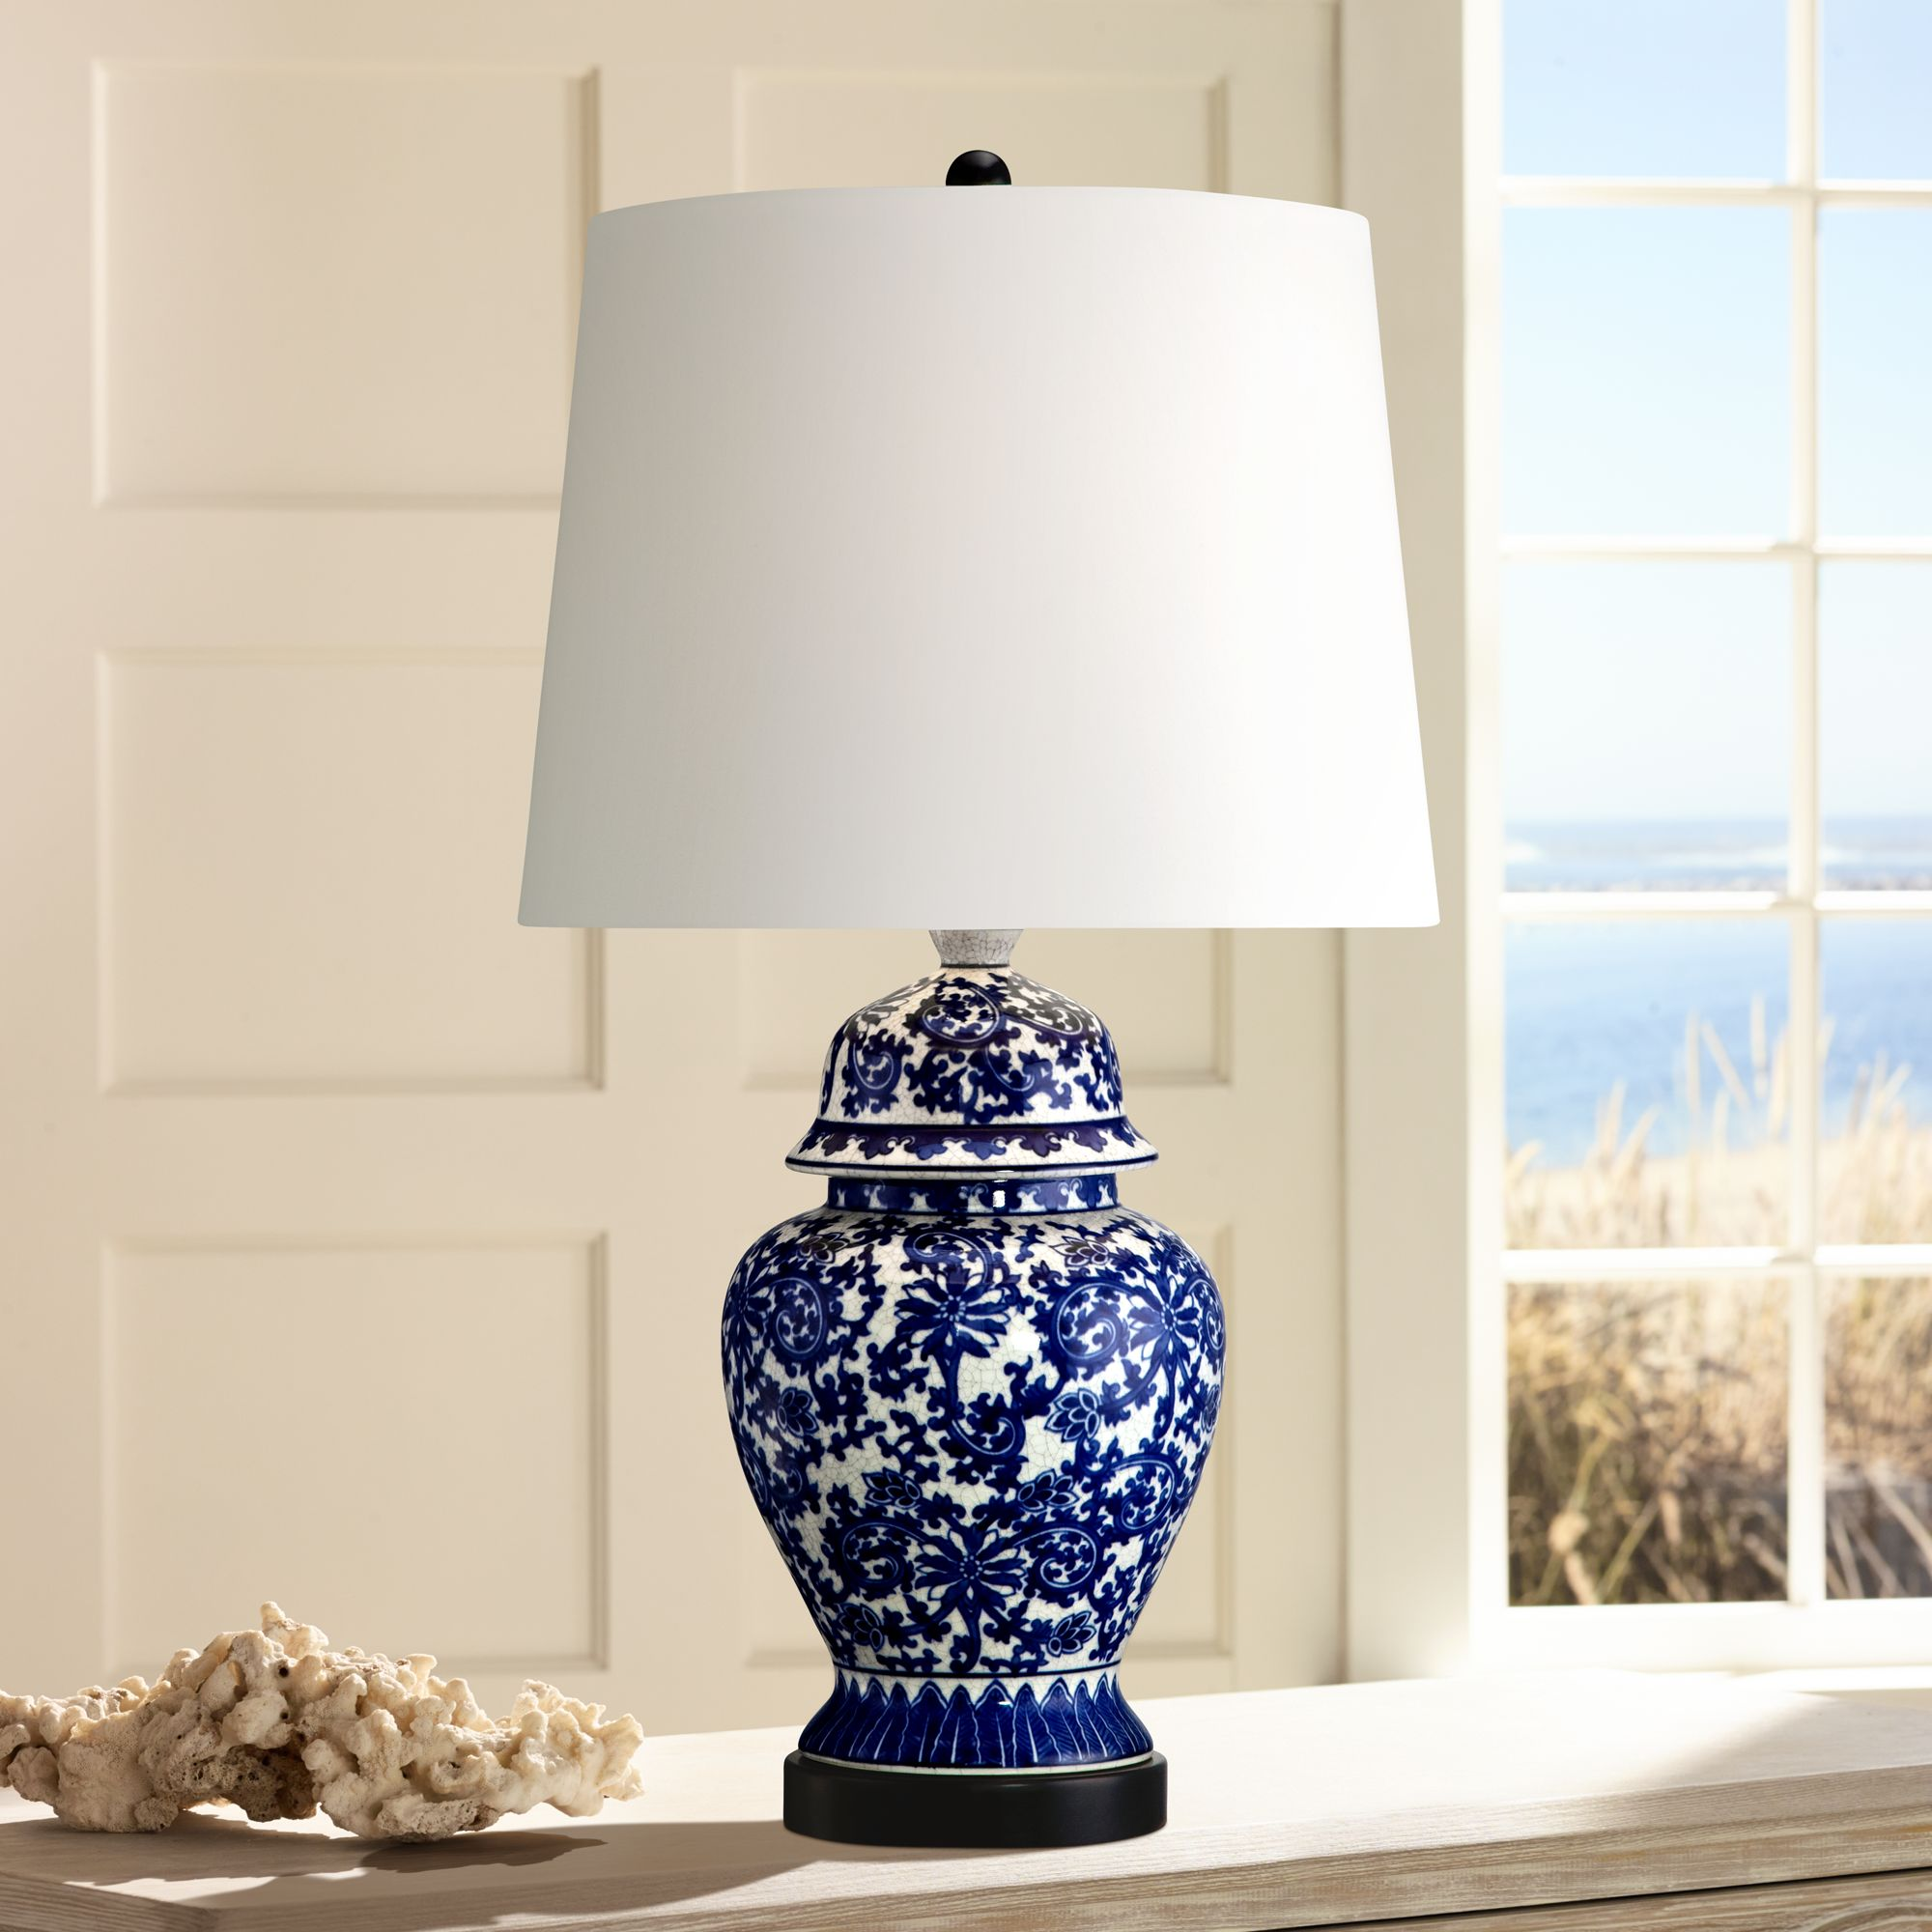 Asian Table Lamp Regency Hill Asian Table Lamp Temple Porcelain Jar Blue Floral White Drum Shade For Living Room Family Bedroom Bedside Nightstand